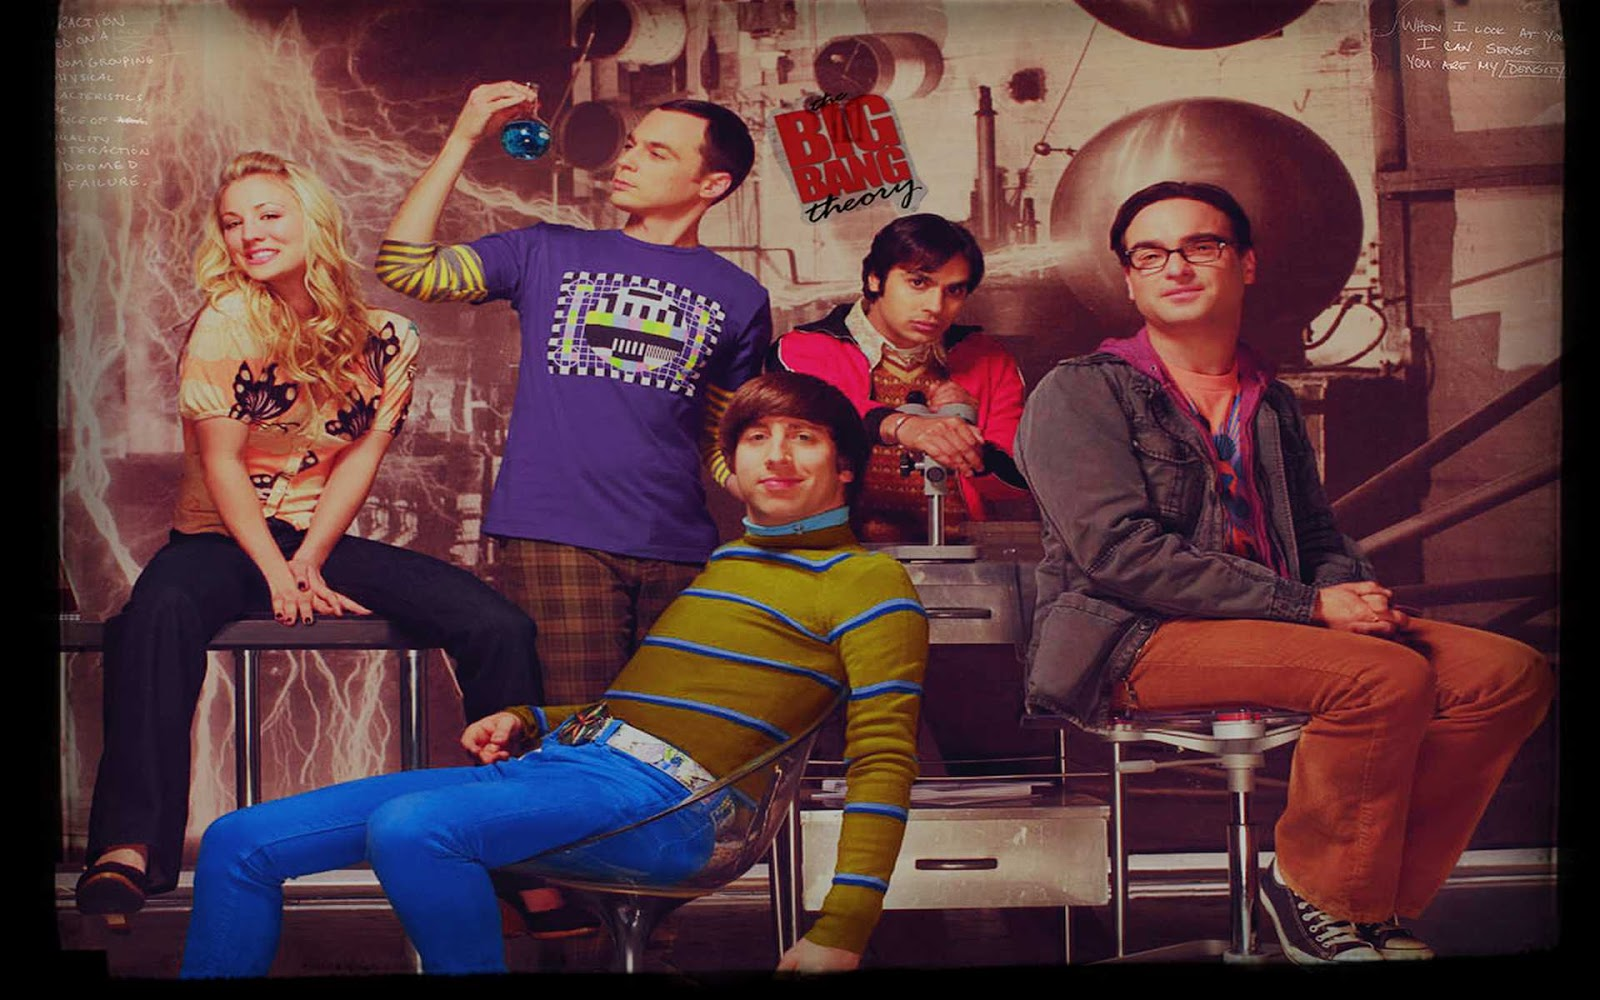 http://4.bp.blogspot.com/-H5K4CLb_Bdg/UNcx76M6xlI/AAAAAAAApkc/yPI0Nf3yxkI/s1600/1920x1200+Wallpaper+Desktop+-+The+big+bang+theory+-+TheBigBangTheory-the-big-bang-theory-30537660-1024-768.jpg